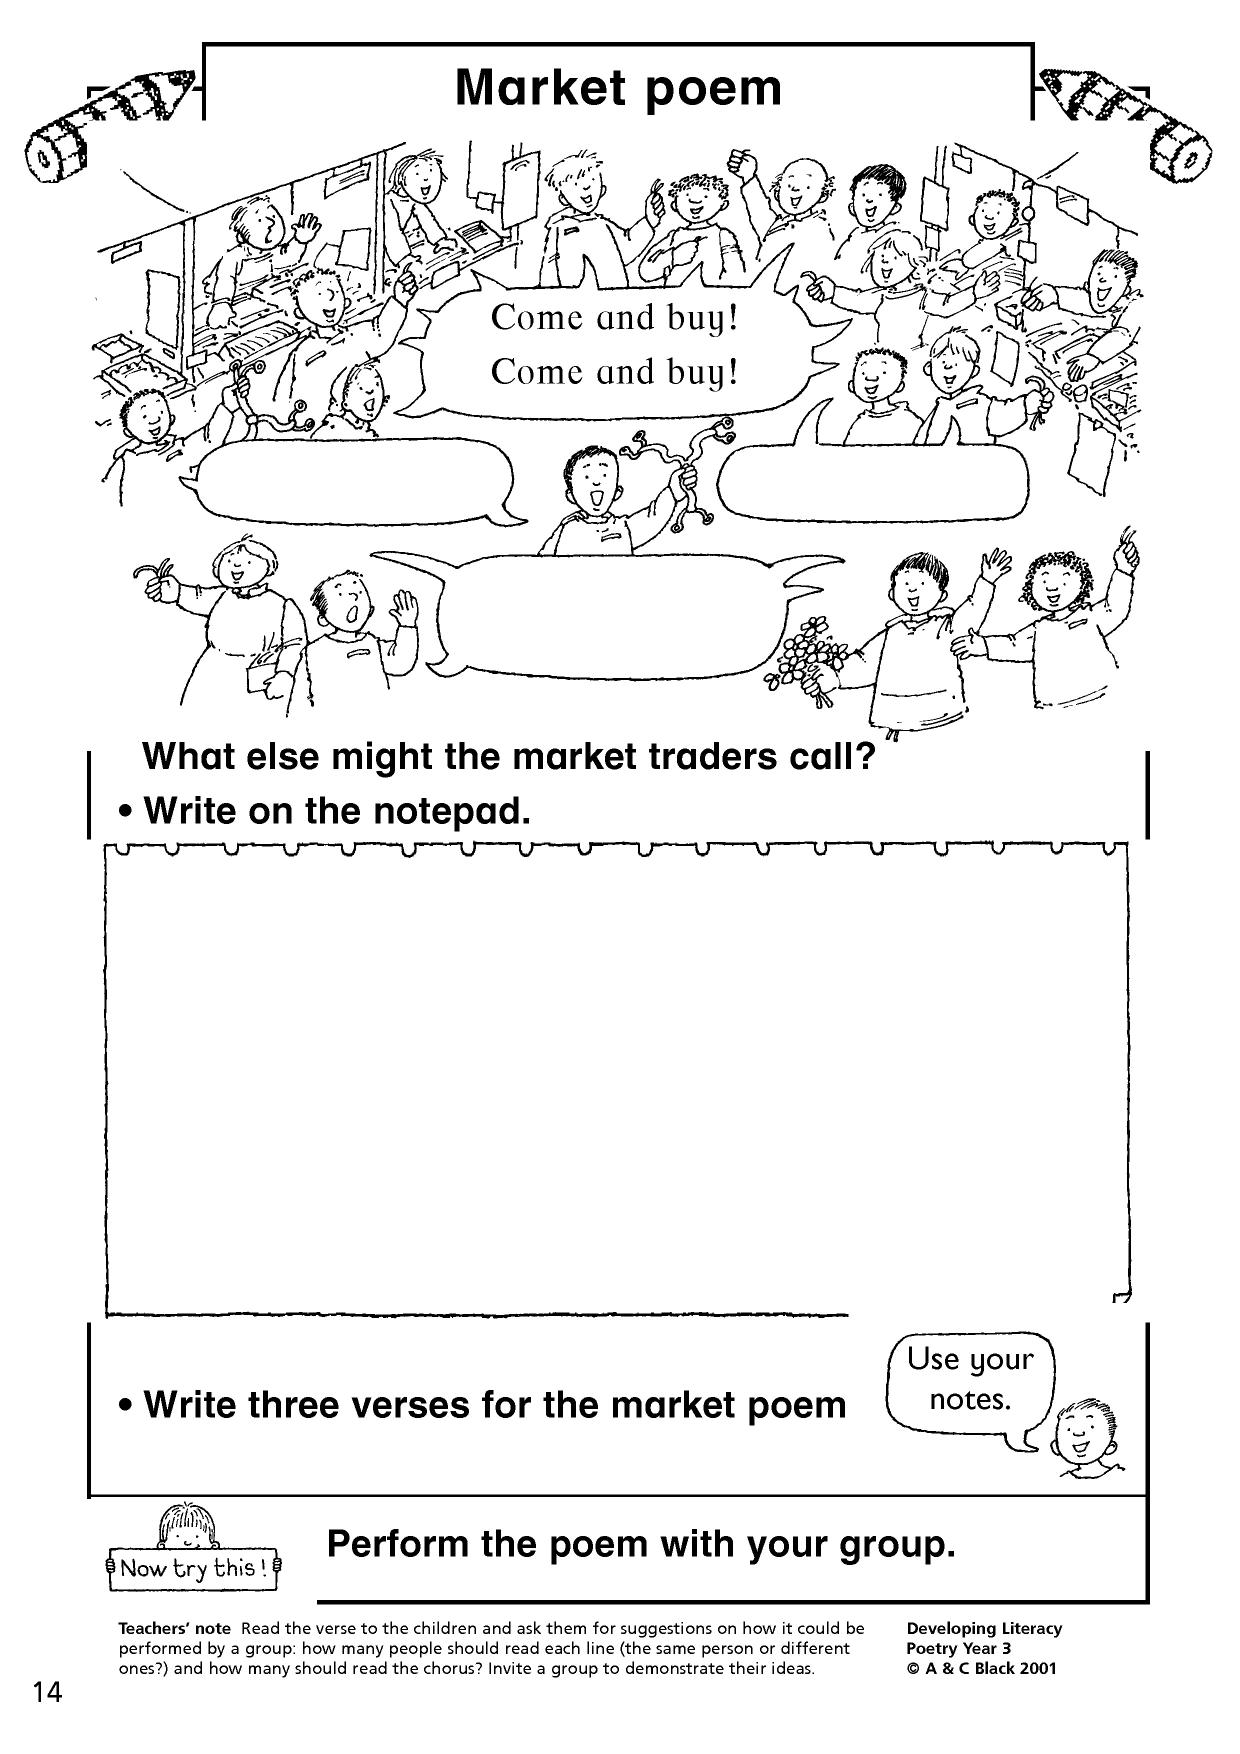 photograph relating to Missing Man Table Poem Printable referred to as Poems upon a topic - appear achievements - Teachit Key